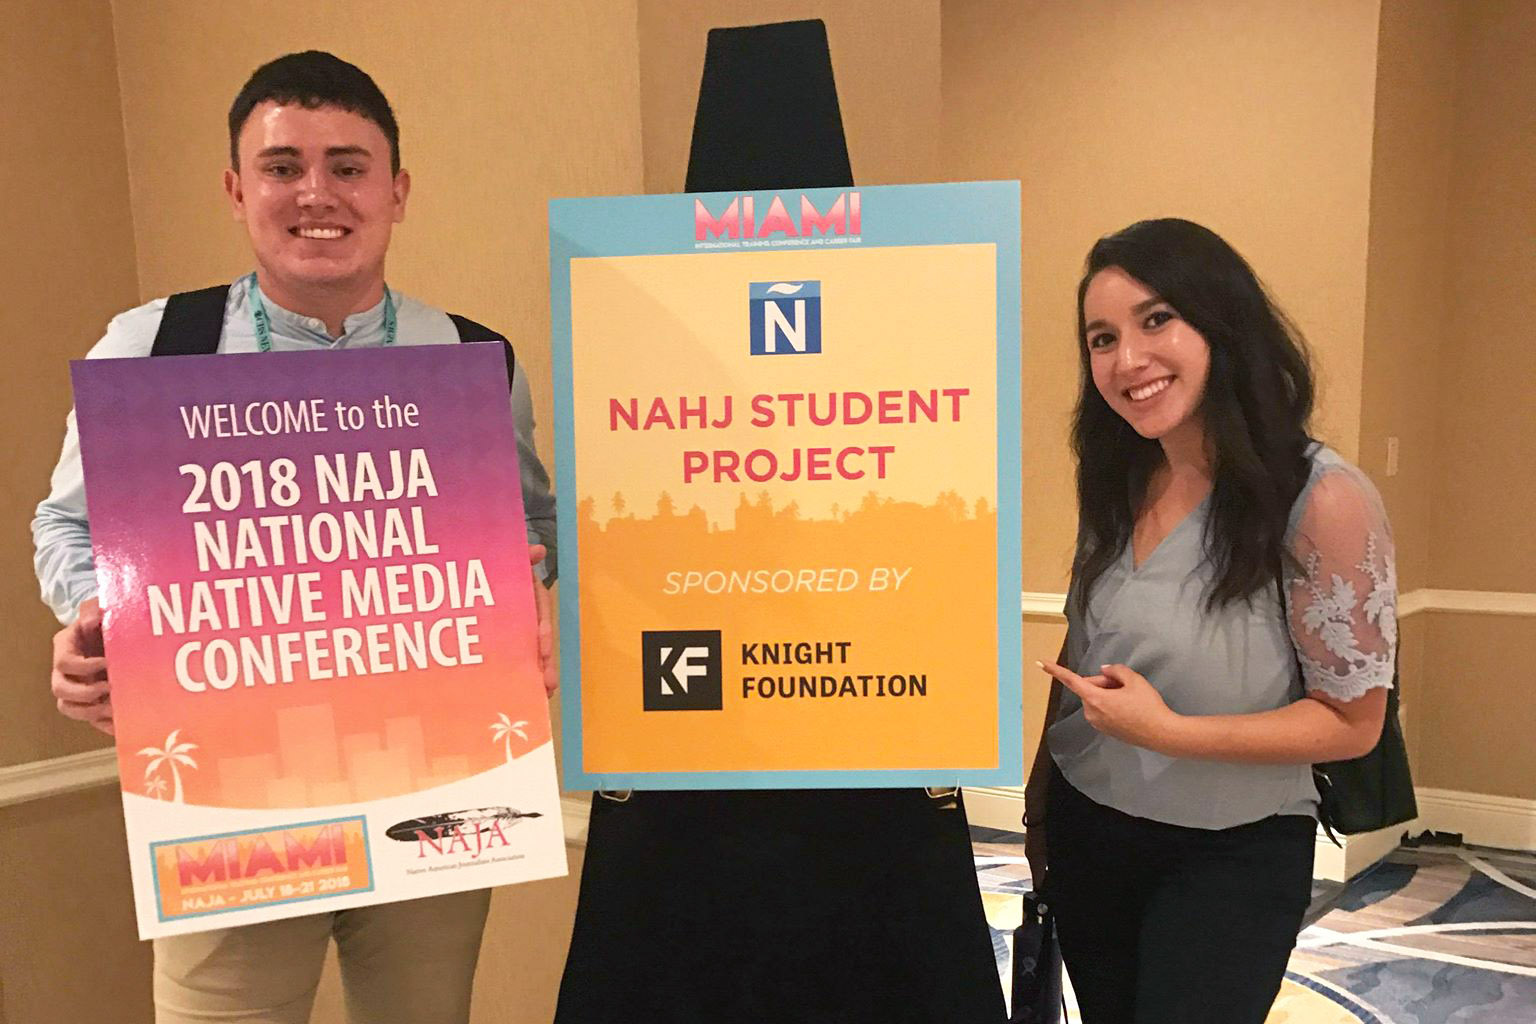 Reynolds students celebrate culture through student newsrooms and fellowships at national conferences